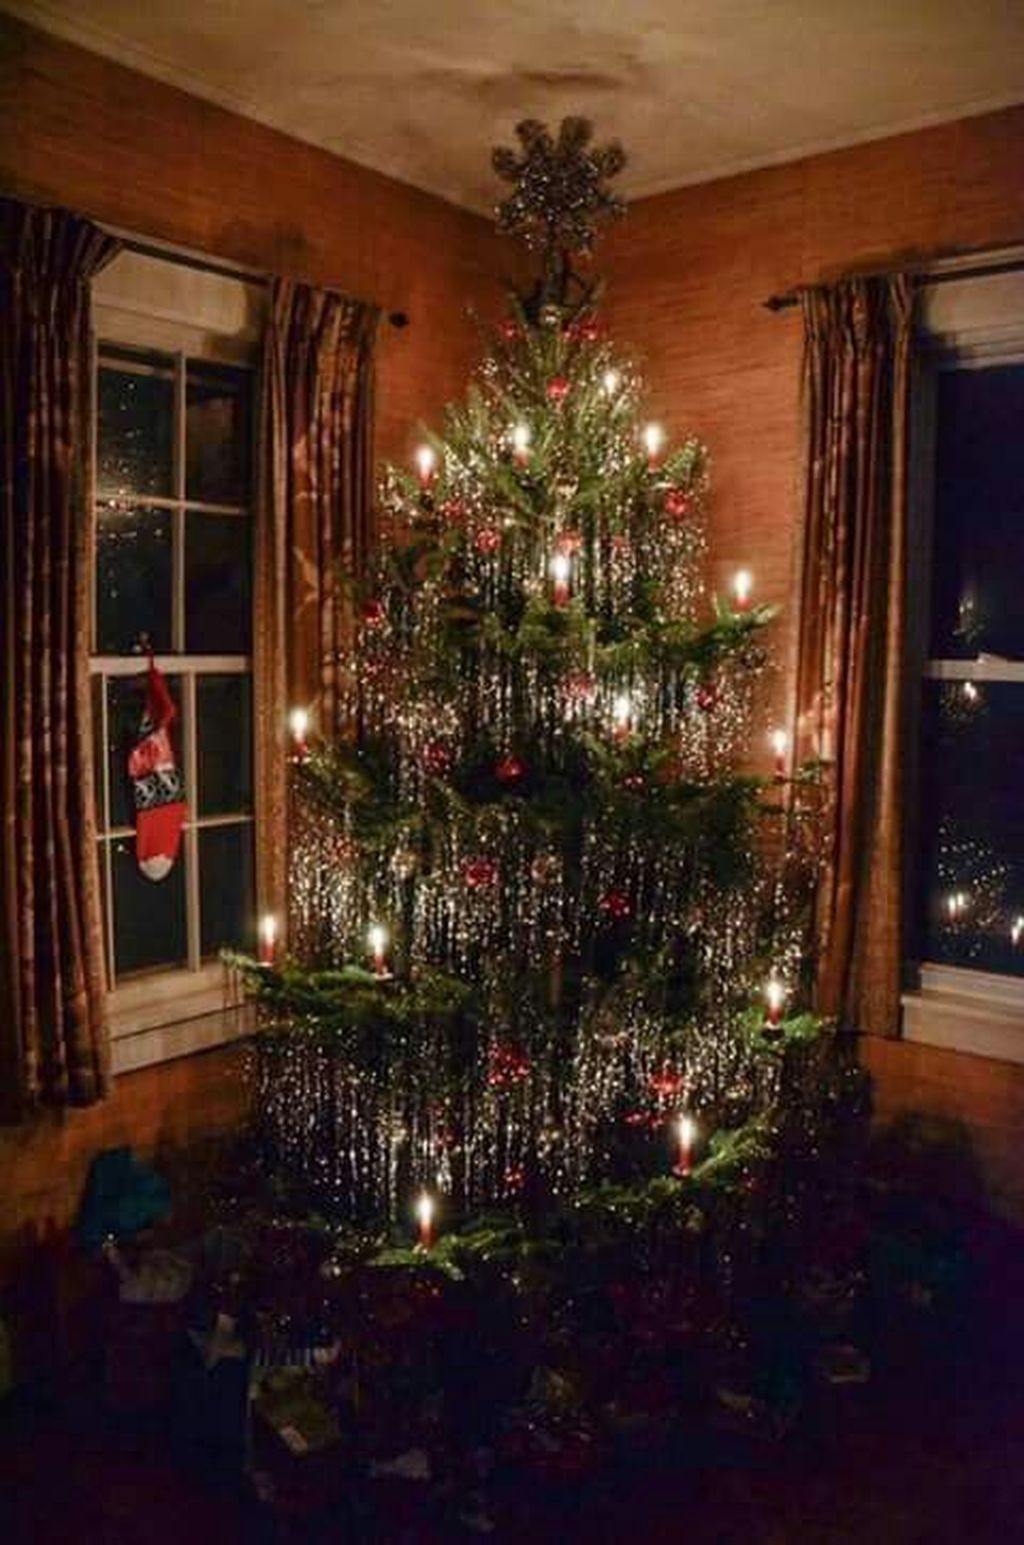 Amazing Christmas Lights Tree Decoration Ideas 12